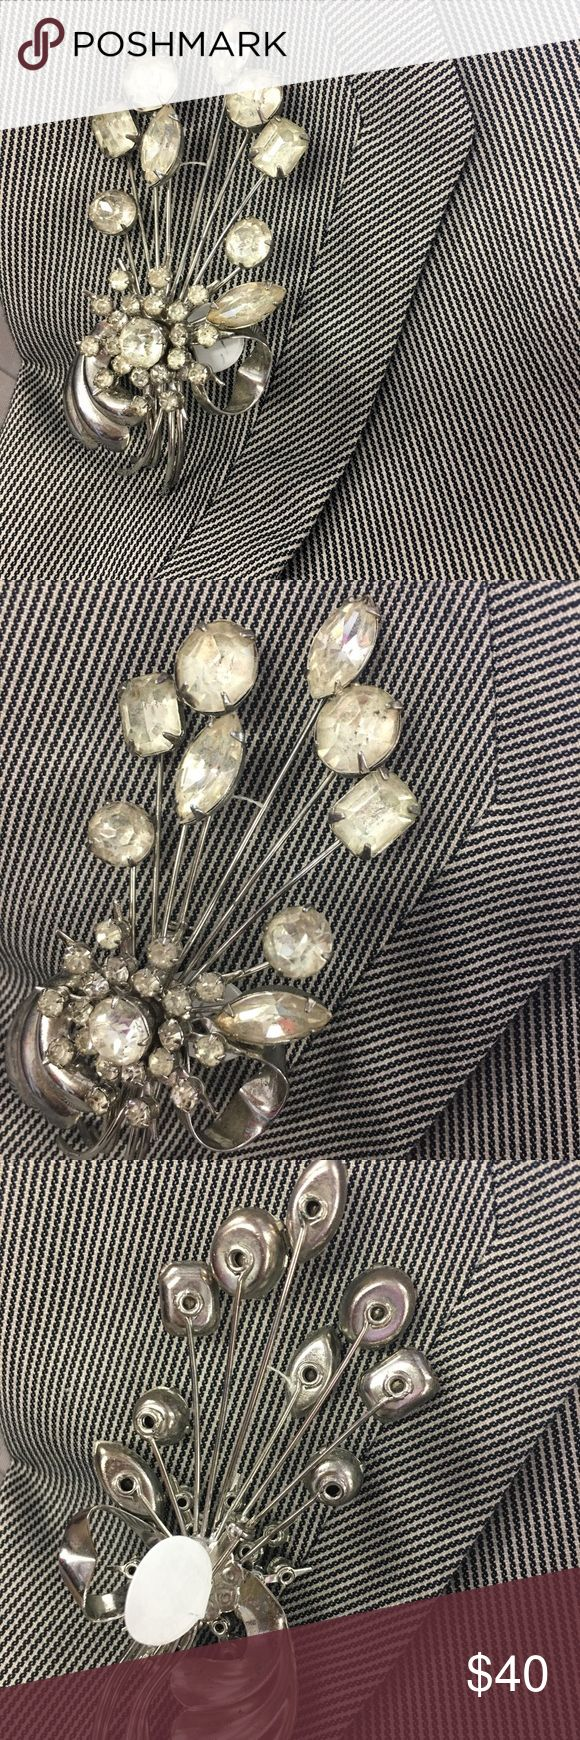 Spring into action! A beautiful vintage brooch 🌹 5.5 inches of vintage glamour! Silver and clear stones, smashing on a lapel or sweater, it is brilliant on anything! ***note signs of wear, a vintage piece*** Vivian's Closet Jewelry Brooches